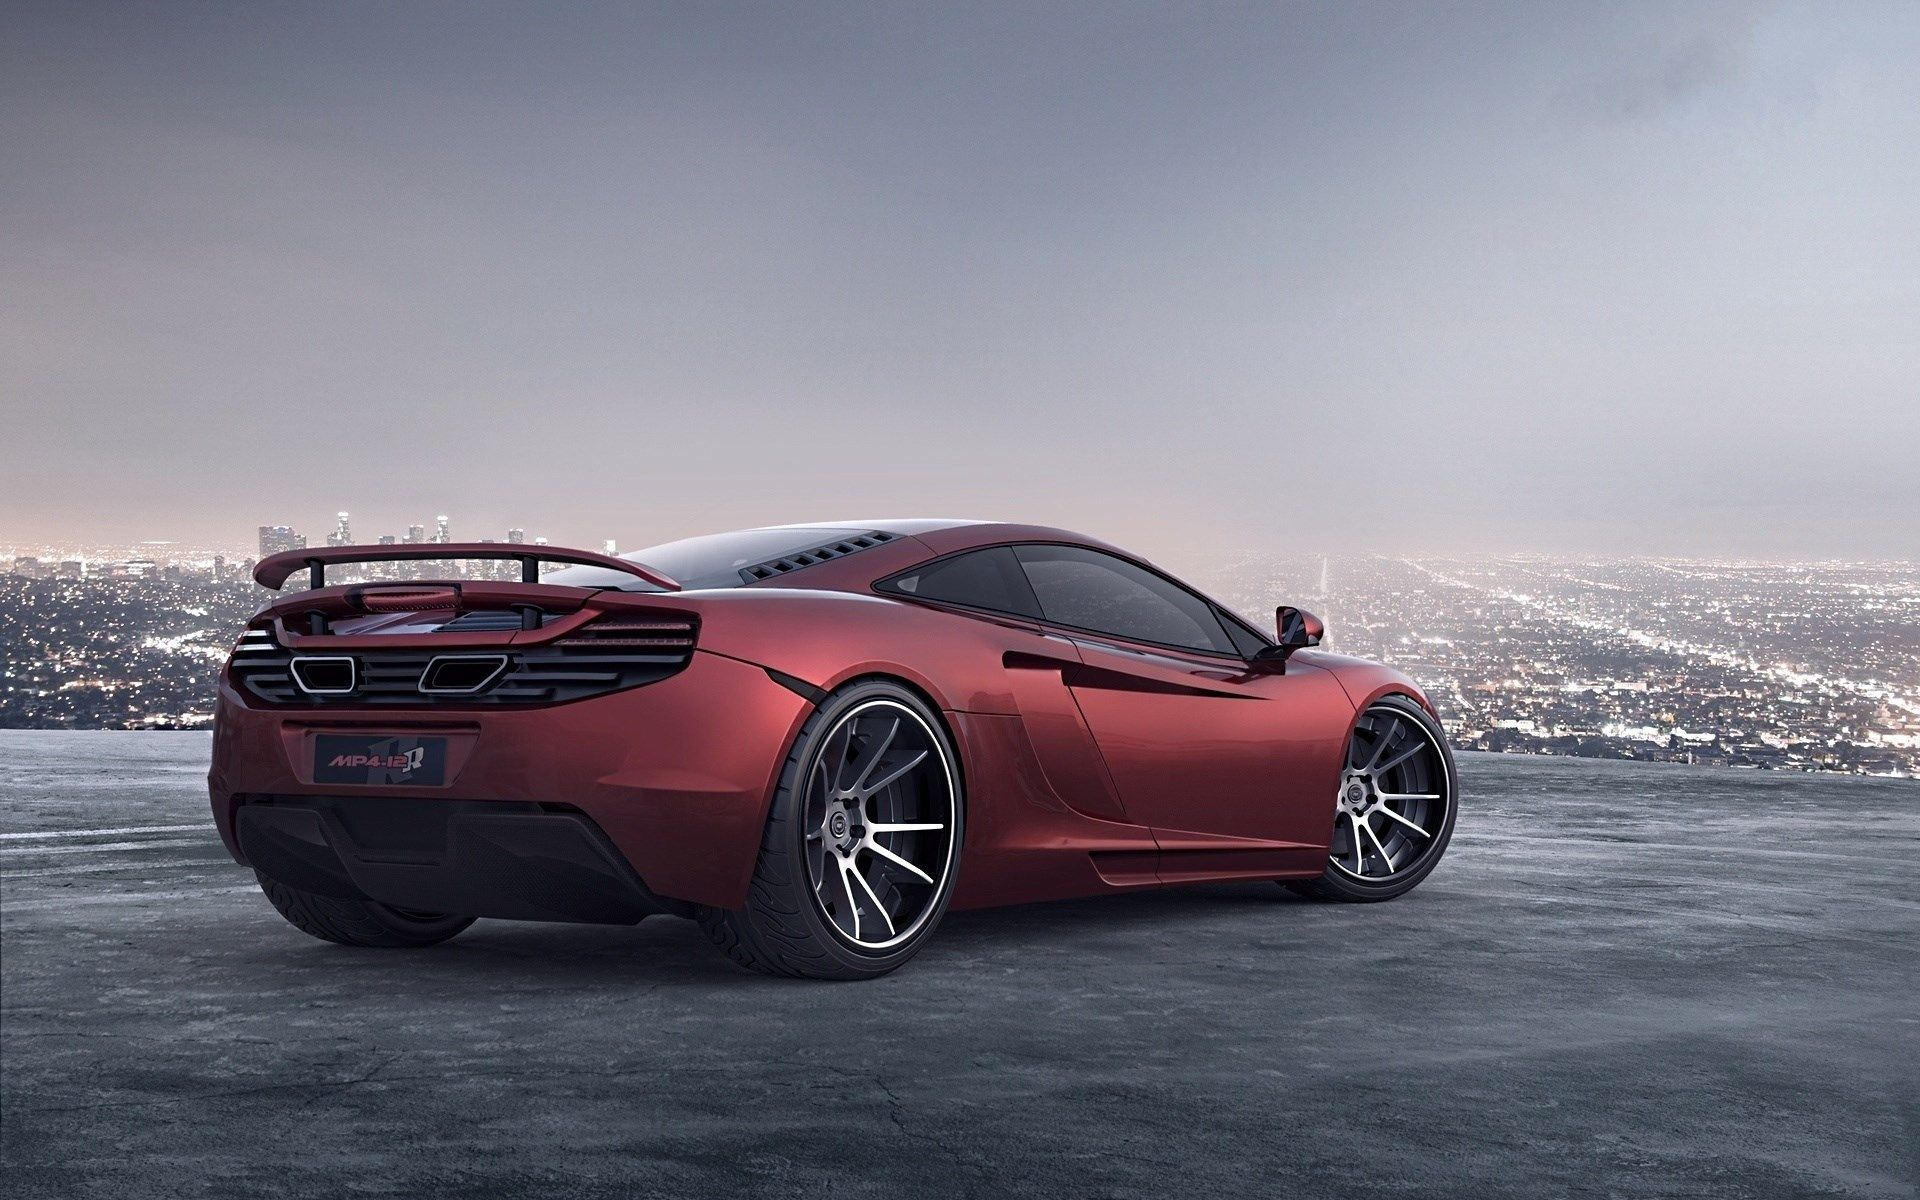 2017 03 10 Free Screensaver Wallpapers For Mclaren Mp4 12c